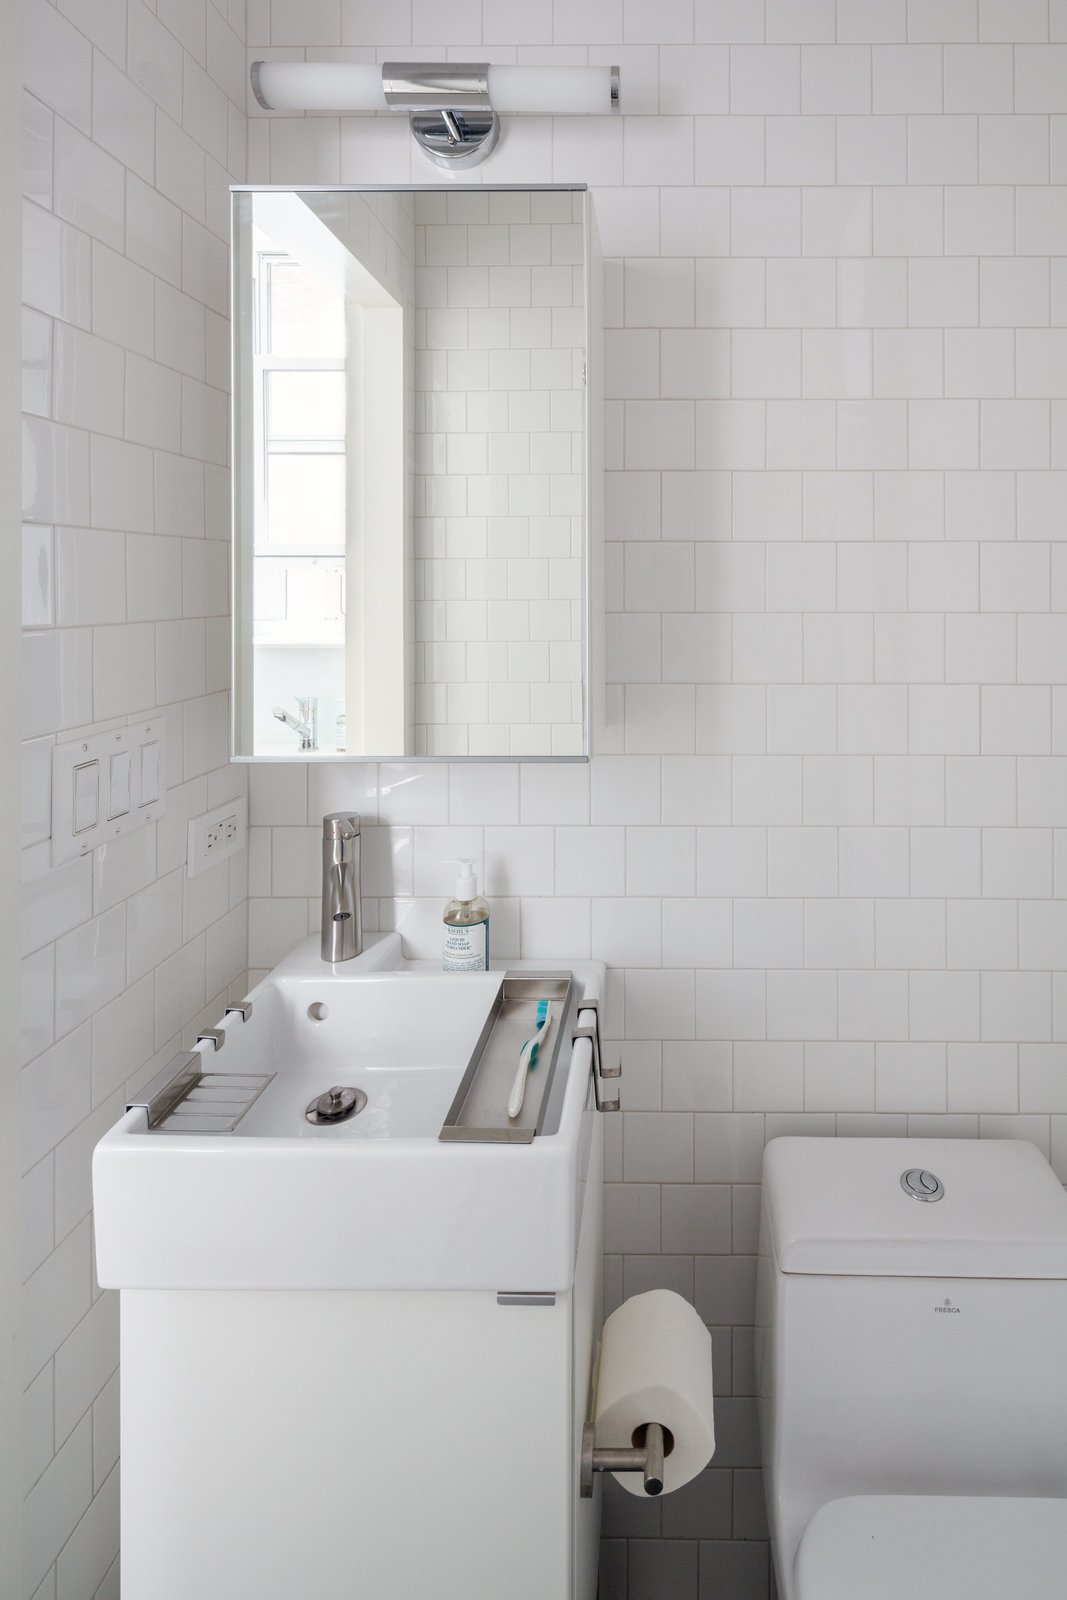 Bath Room, Drop In Sink, Vessel Sink, and One Piece Toilet In the bathroom, a compact Lillången sink from IKEA offers a narrow profile for the tight space, yet is deep enough to accommodate hanging storage trays for toiletrie. The toilet is by Fresca and the subway tile is from Mosa.  Photo 9 of 10 in This 390-Square-Foot Renovation Is Compact Yet Comfortable in Greenwich Village